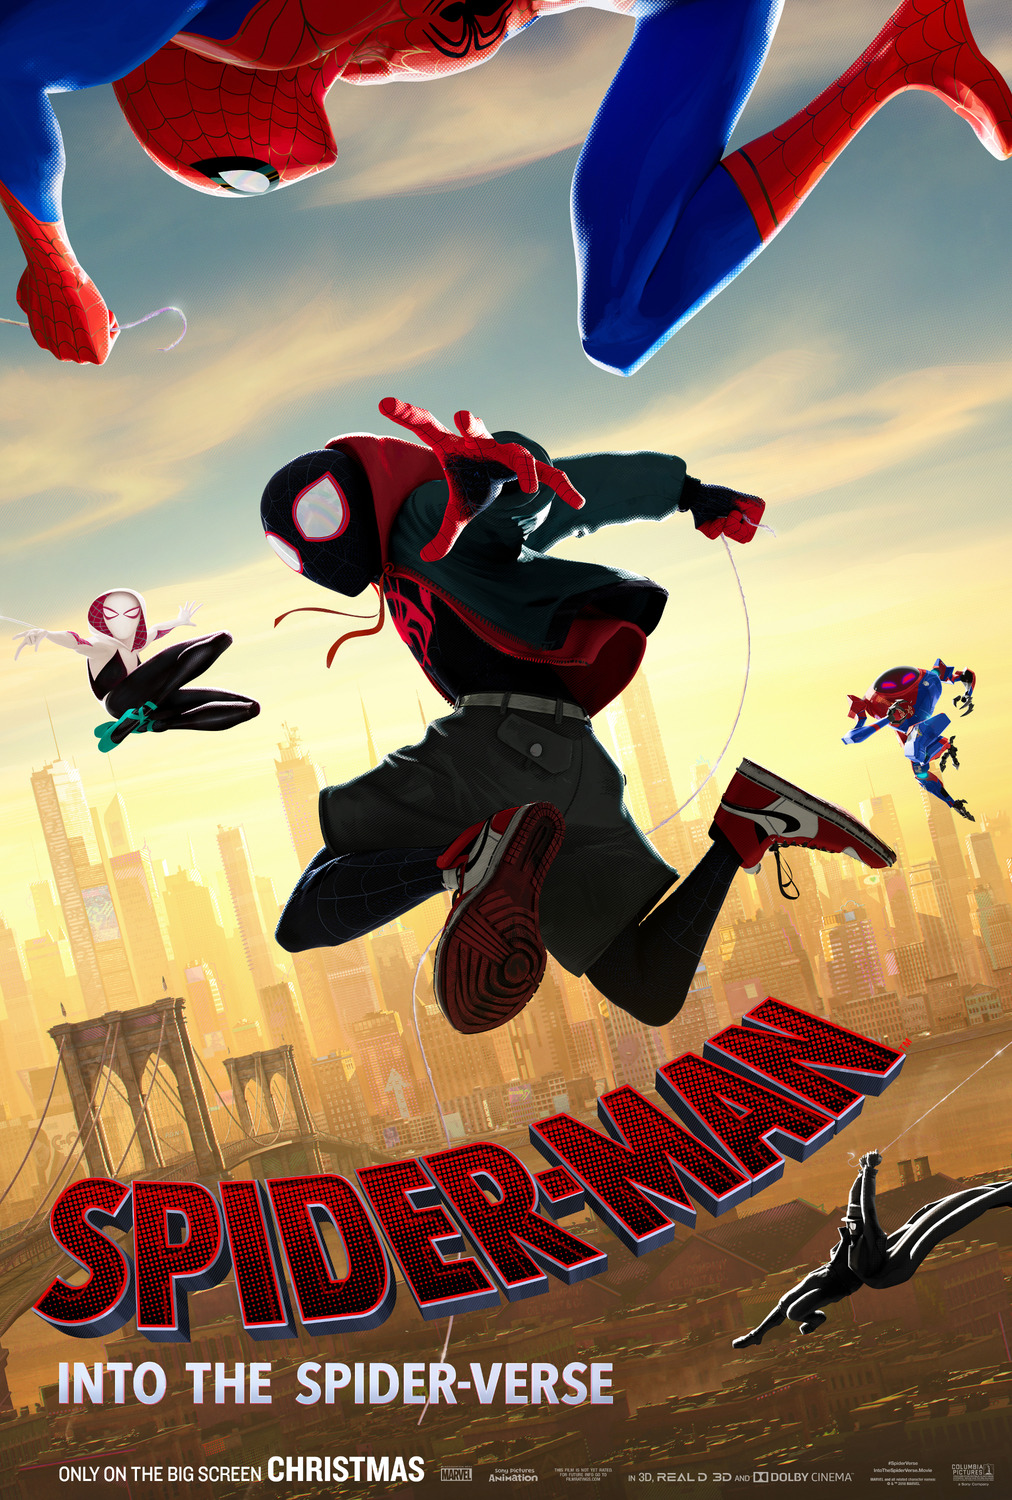 Spiderman Into The Spiderverse poster